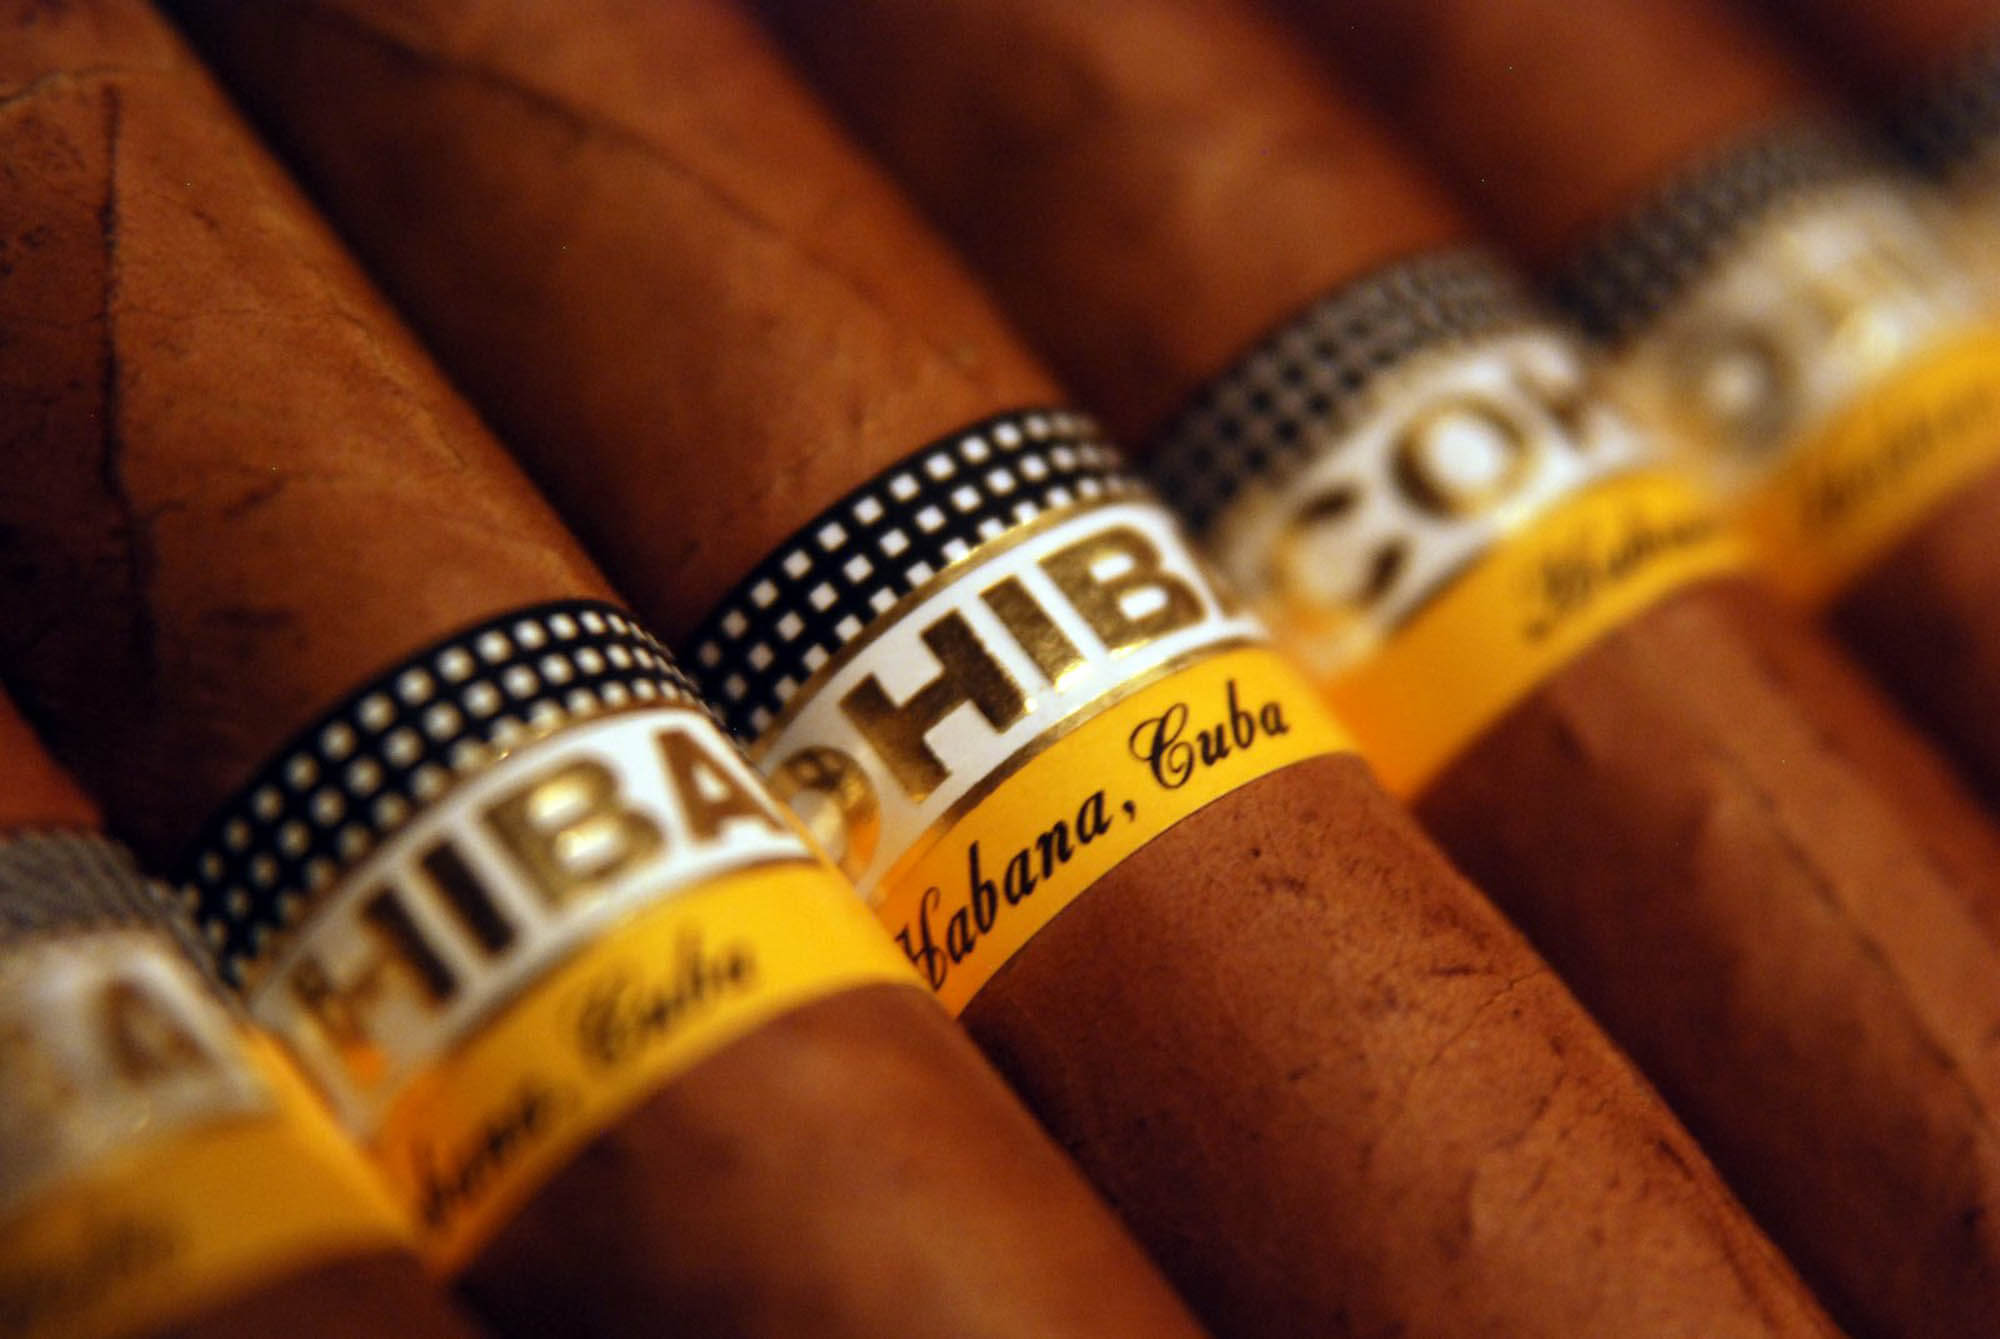 Cohiba's most expensive Cigars